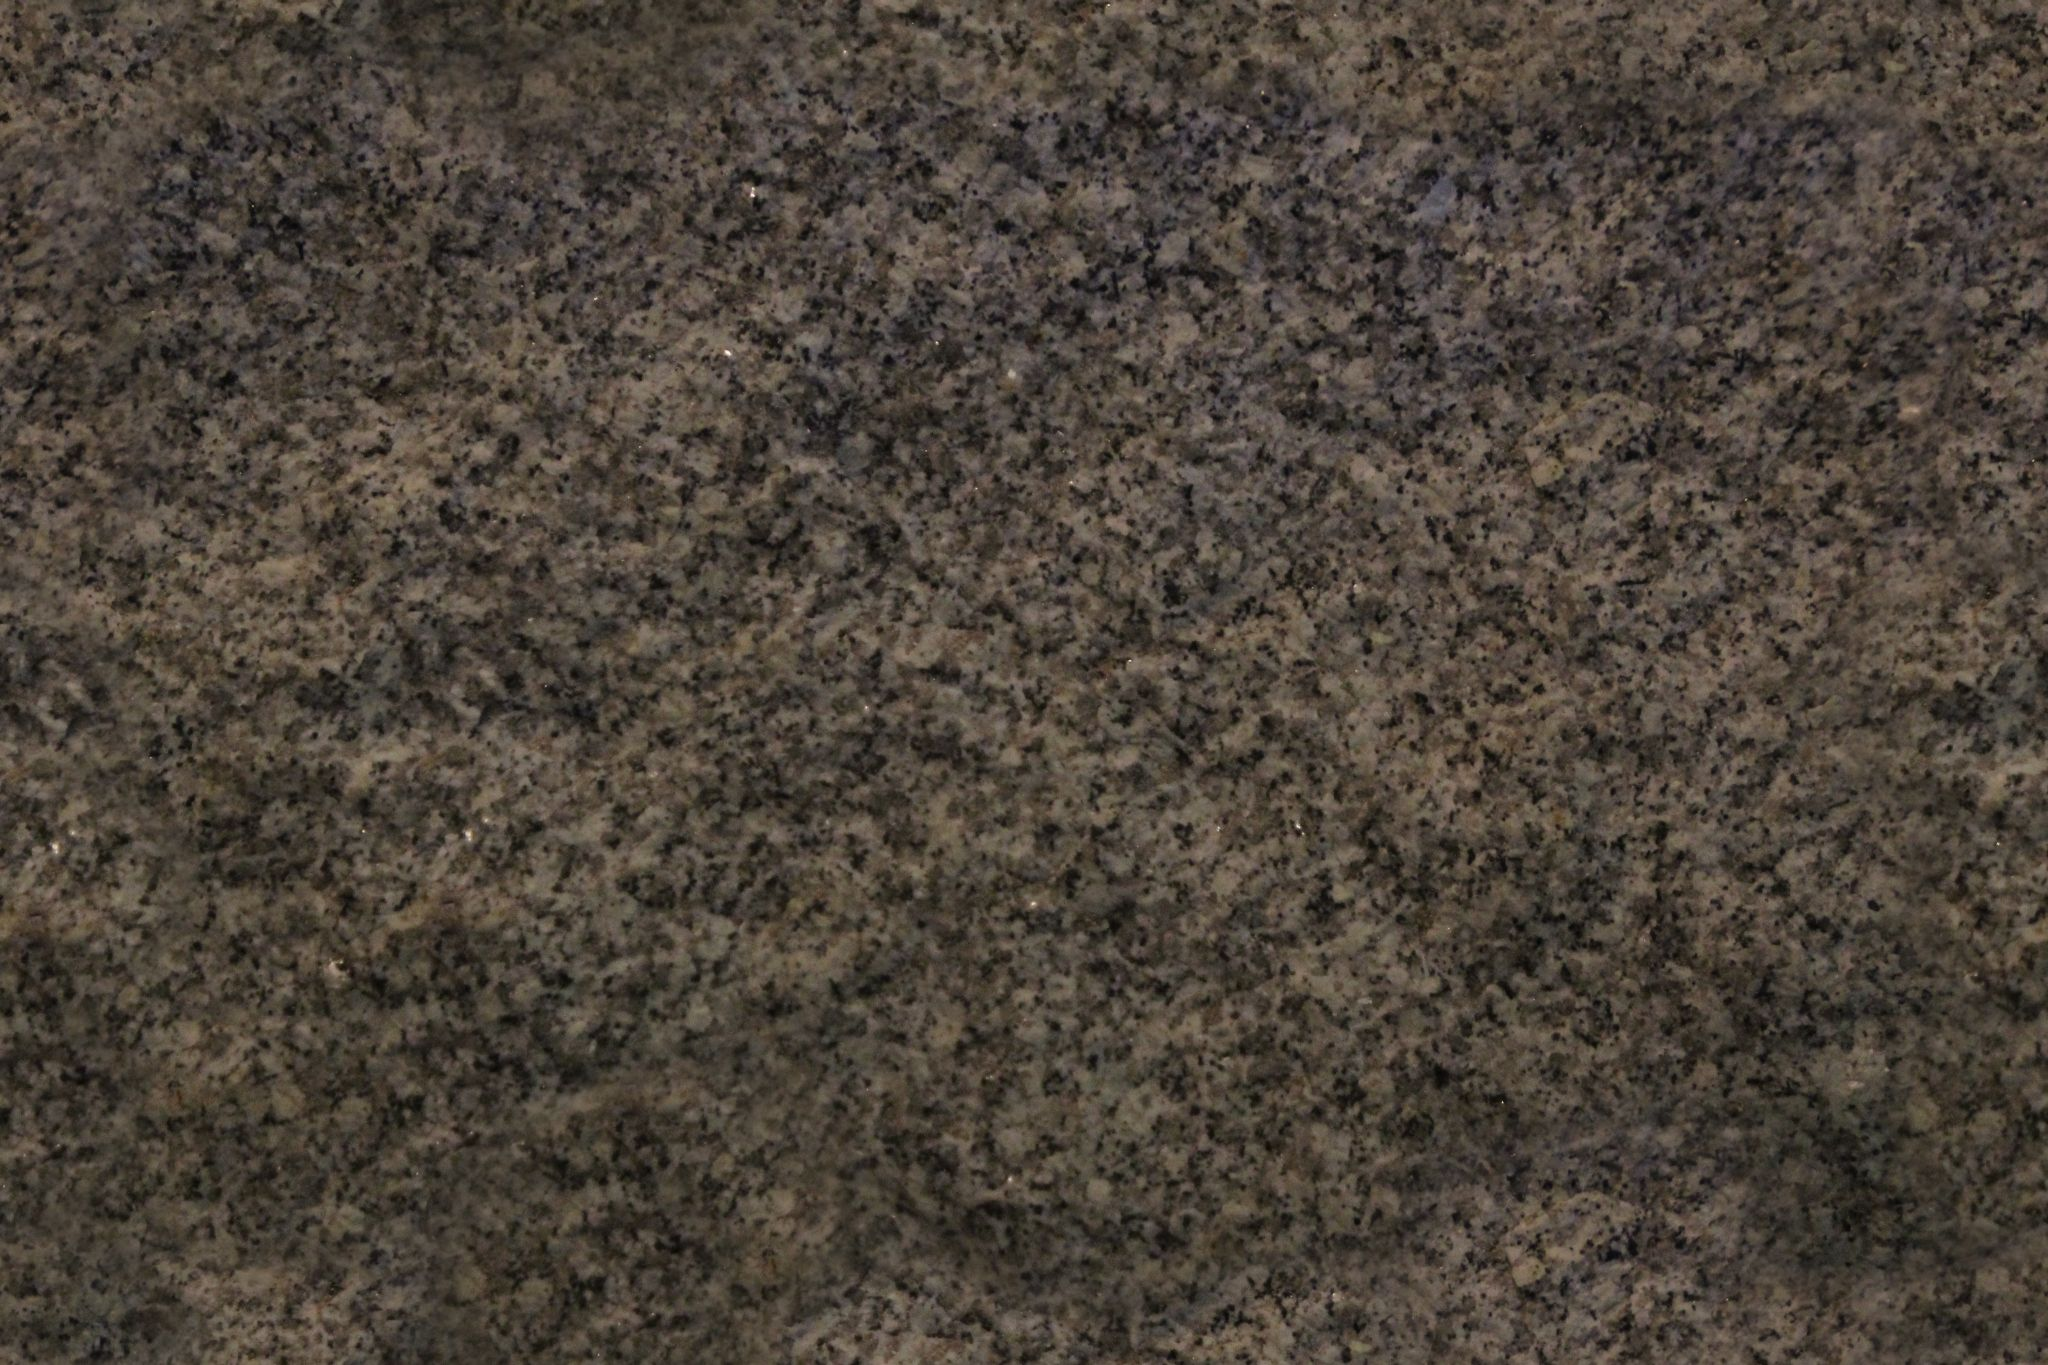 Granite Texture - Rough Sandy Black - Seamless Texture with ...